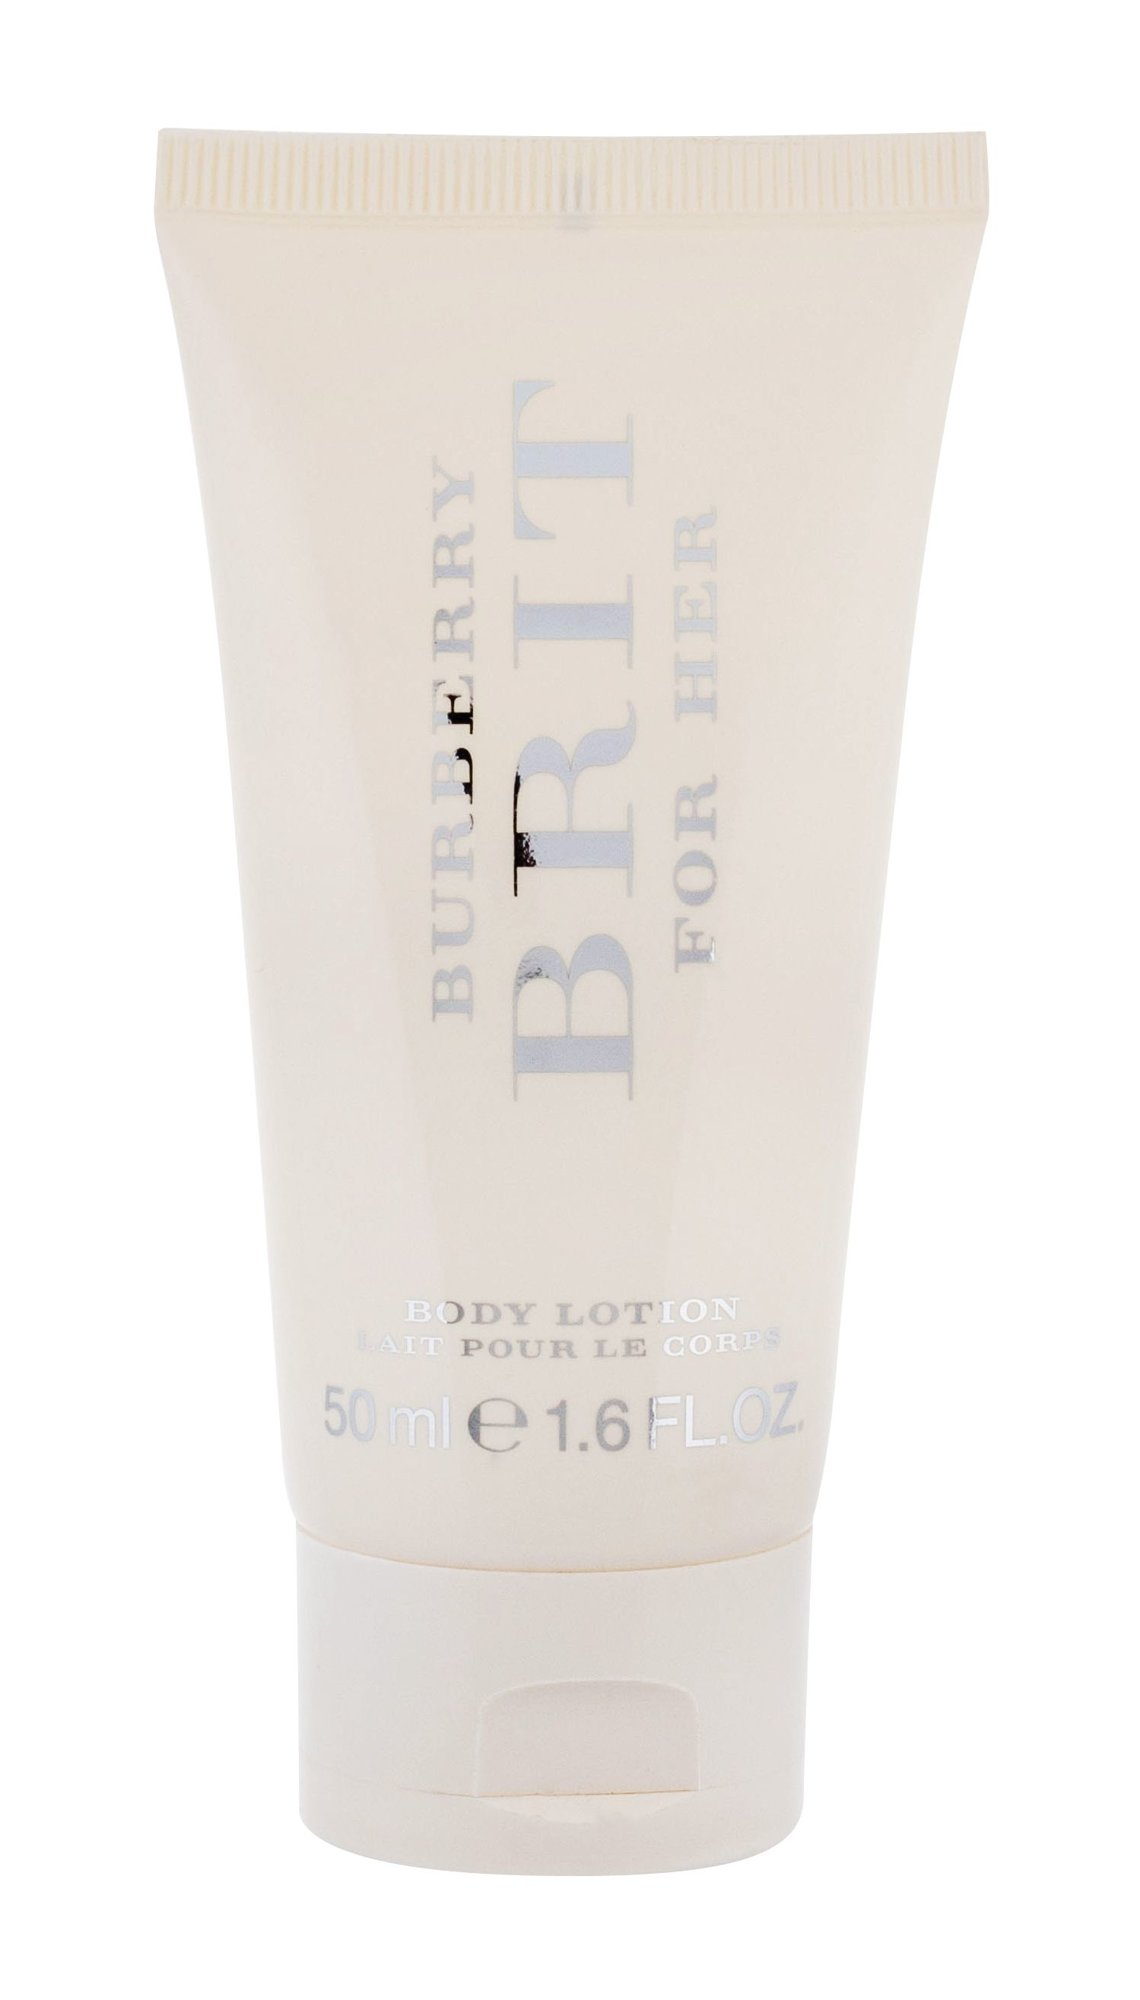 Burberry Brit for Her Body lotion 50ml